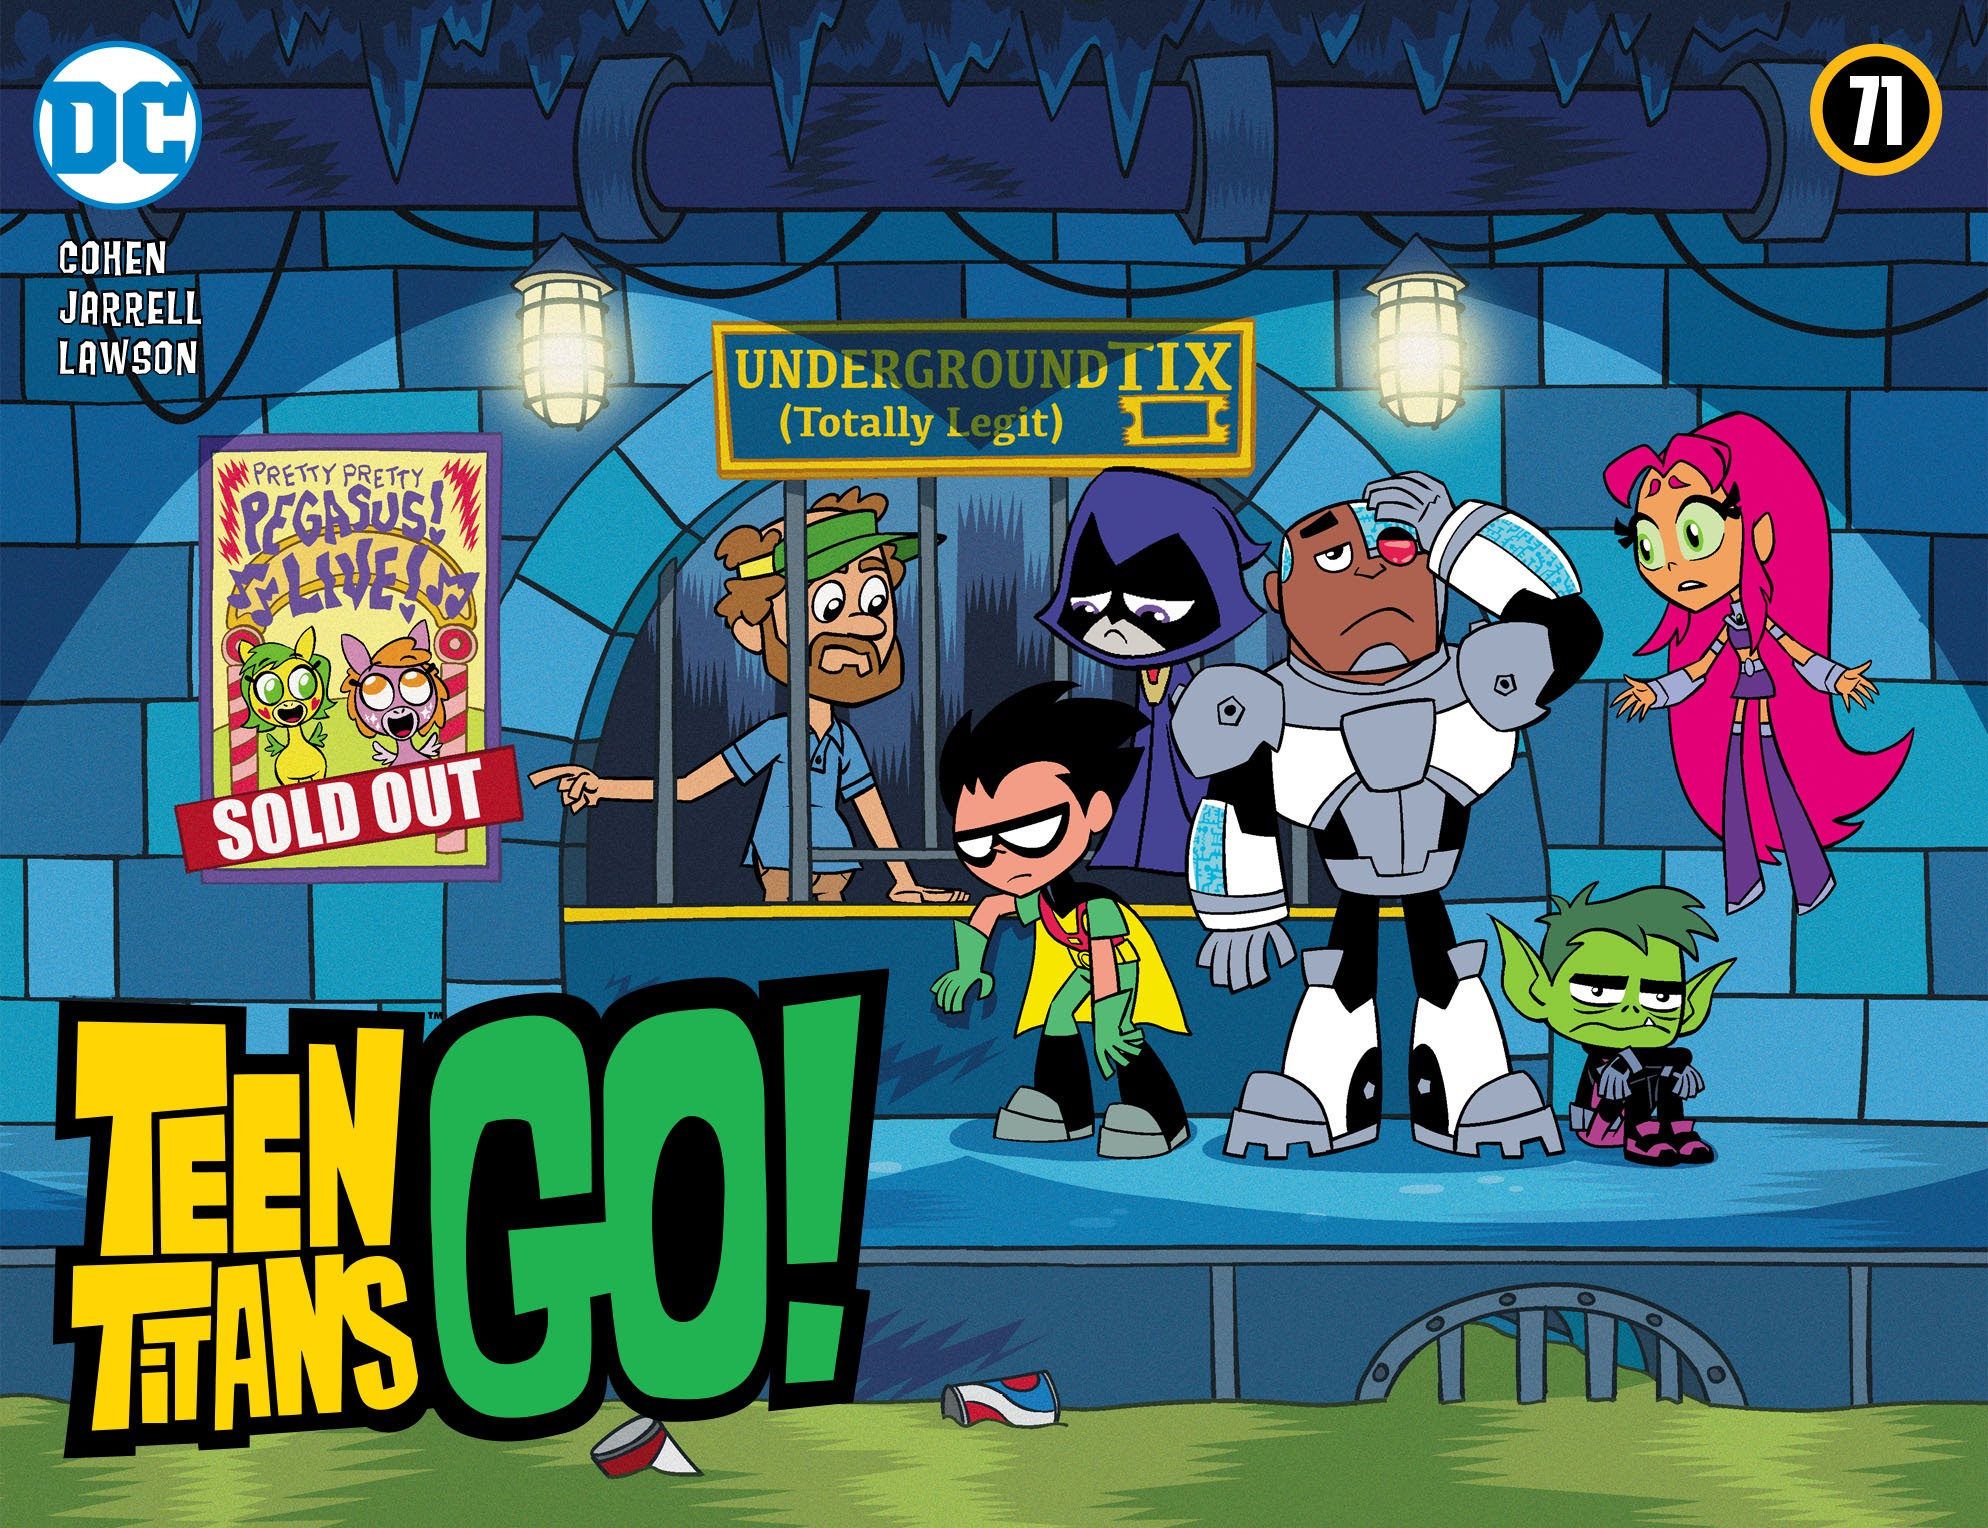 Teen Titans Go! (2013) 71 Page 1